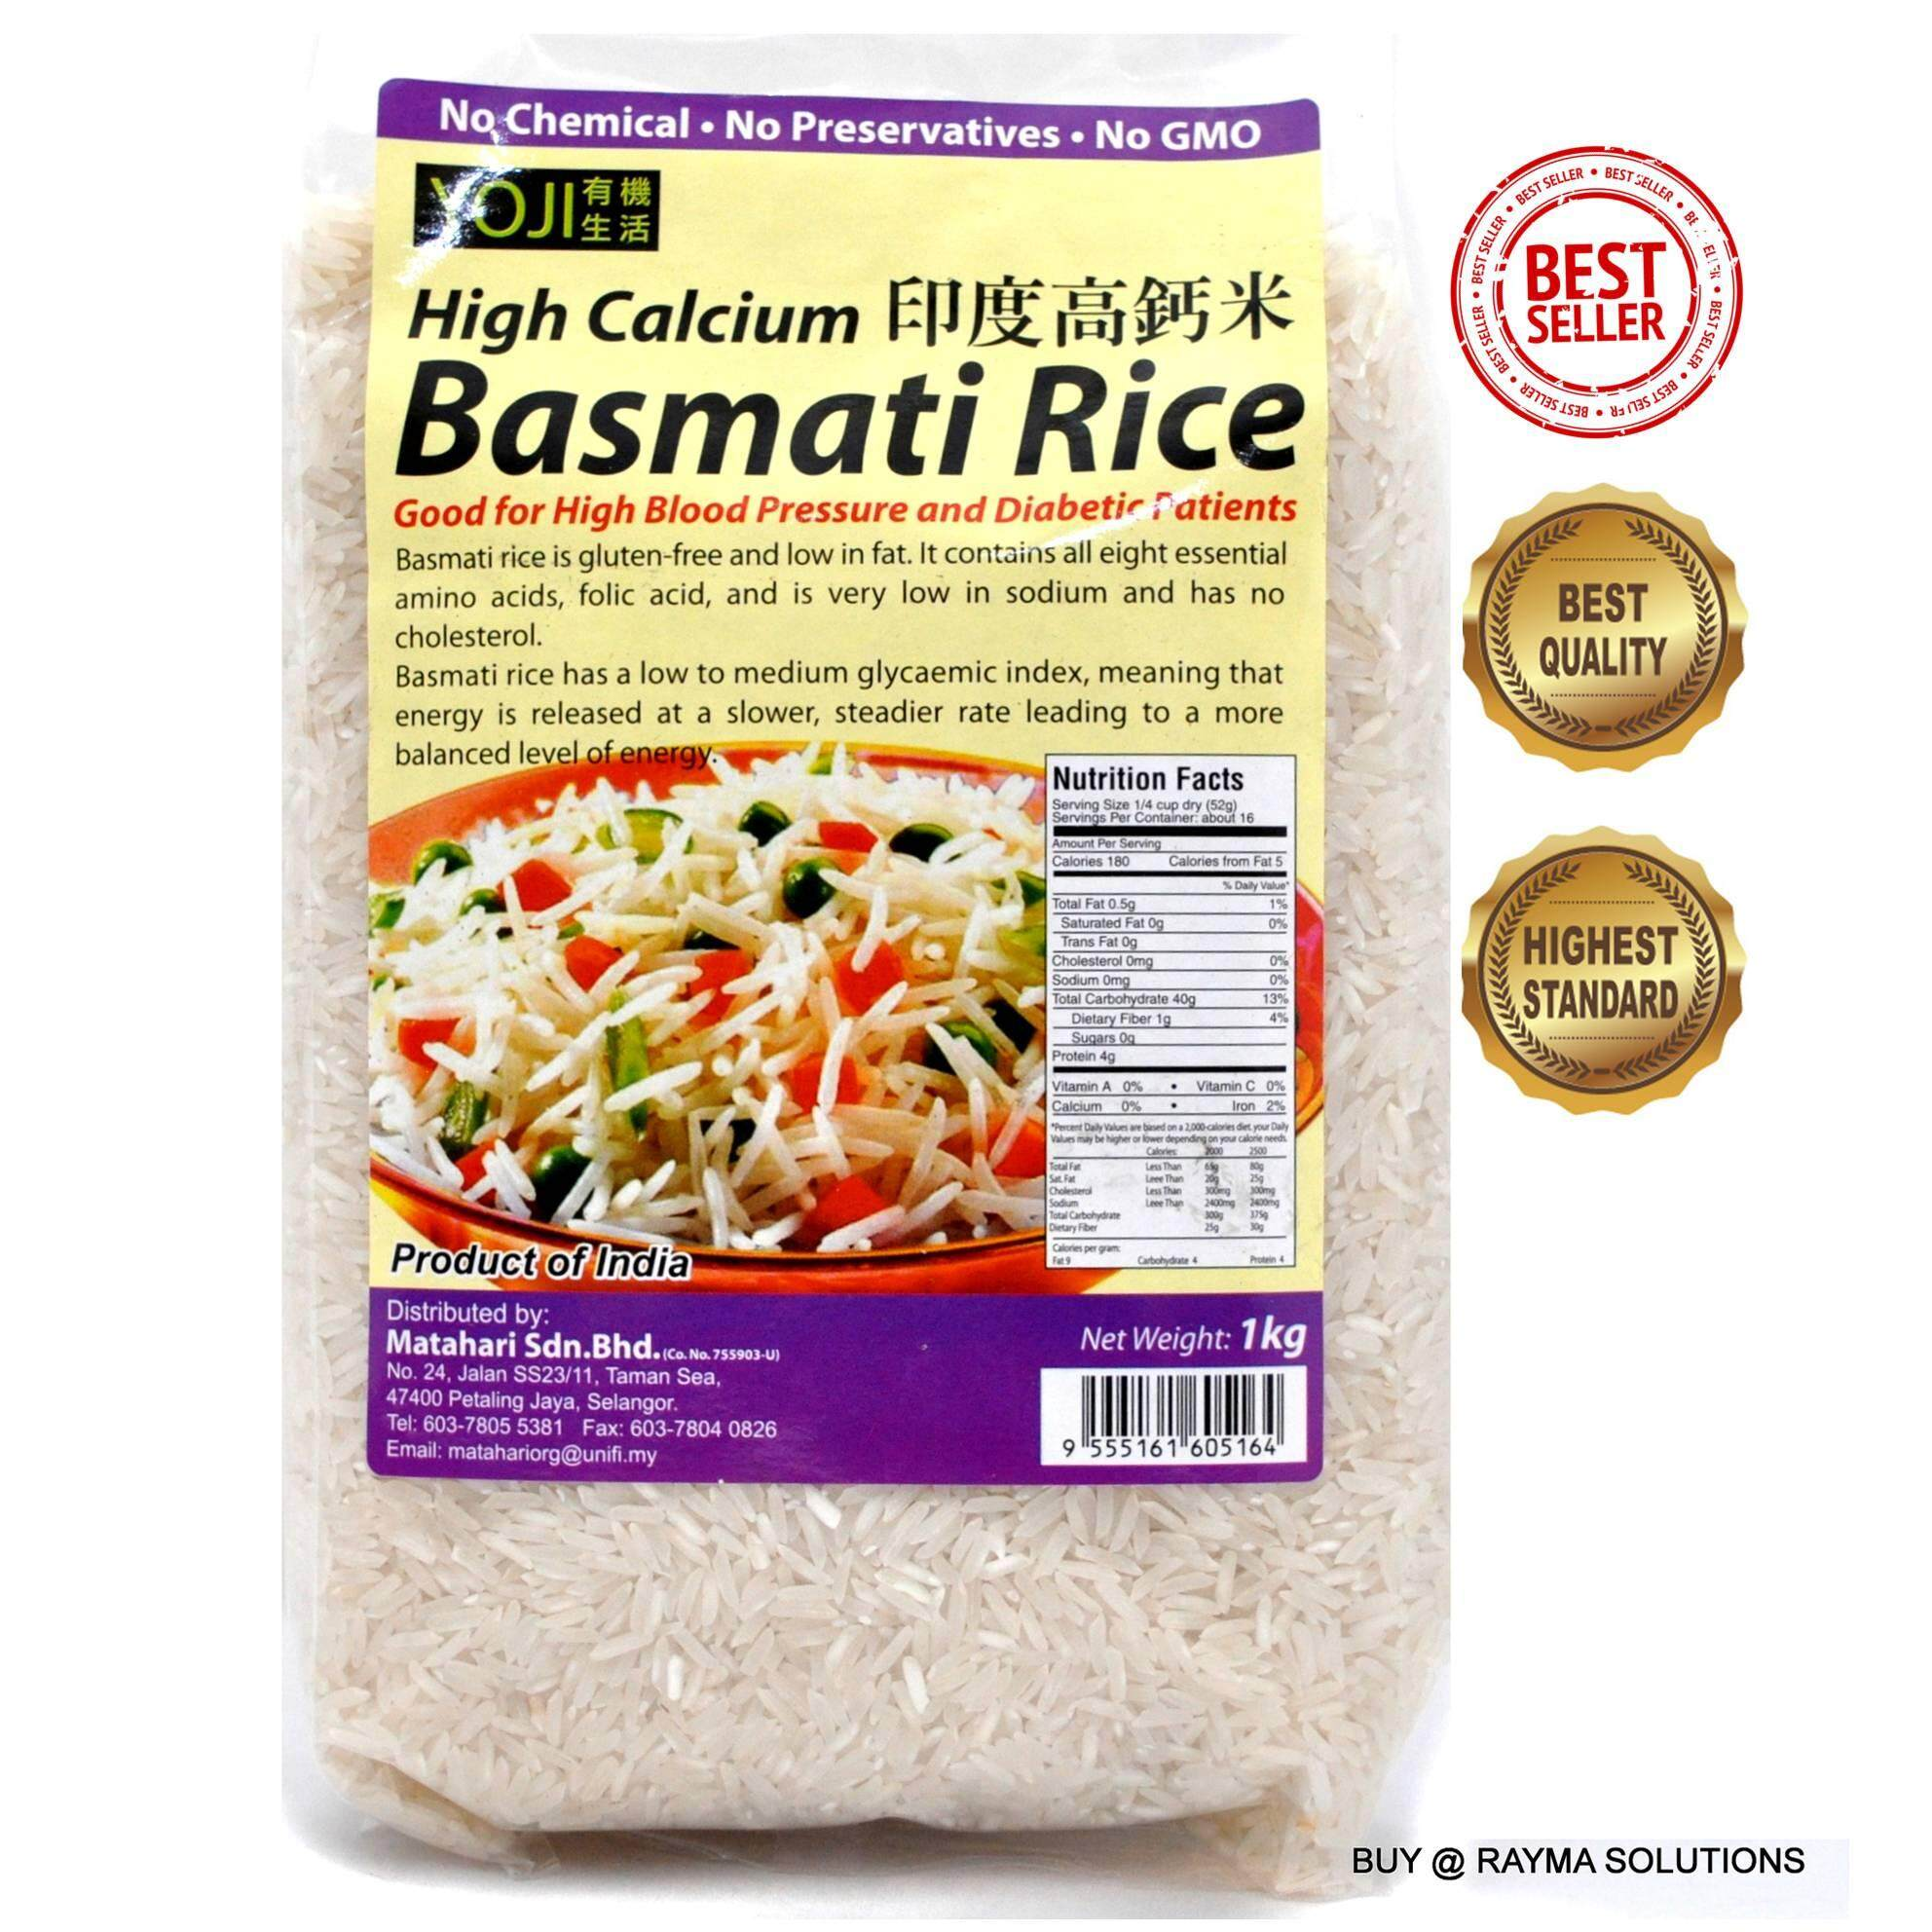 MH FOOD High Calcium Basmati Rice, Gluten Free, 1kg